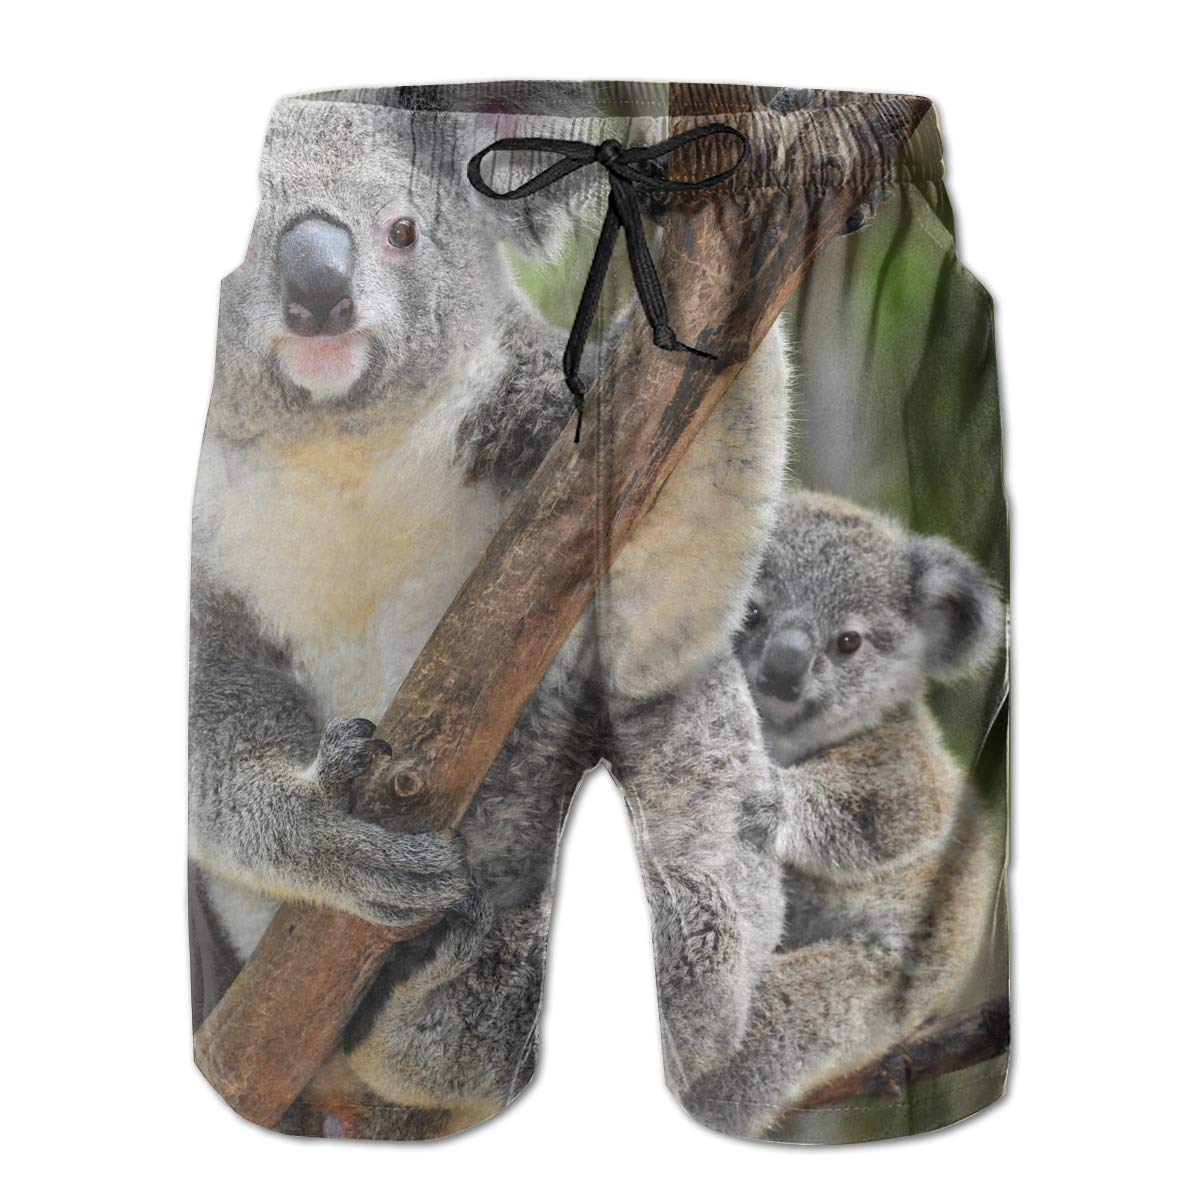 Koala Men/â/€s Beach Board Shorts Quick Dry Swim Truck Shorts